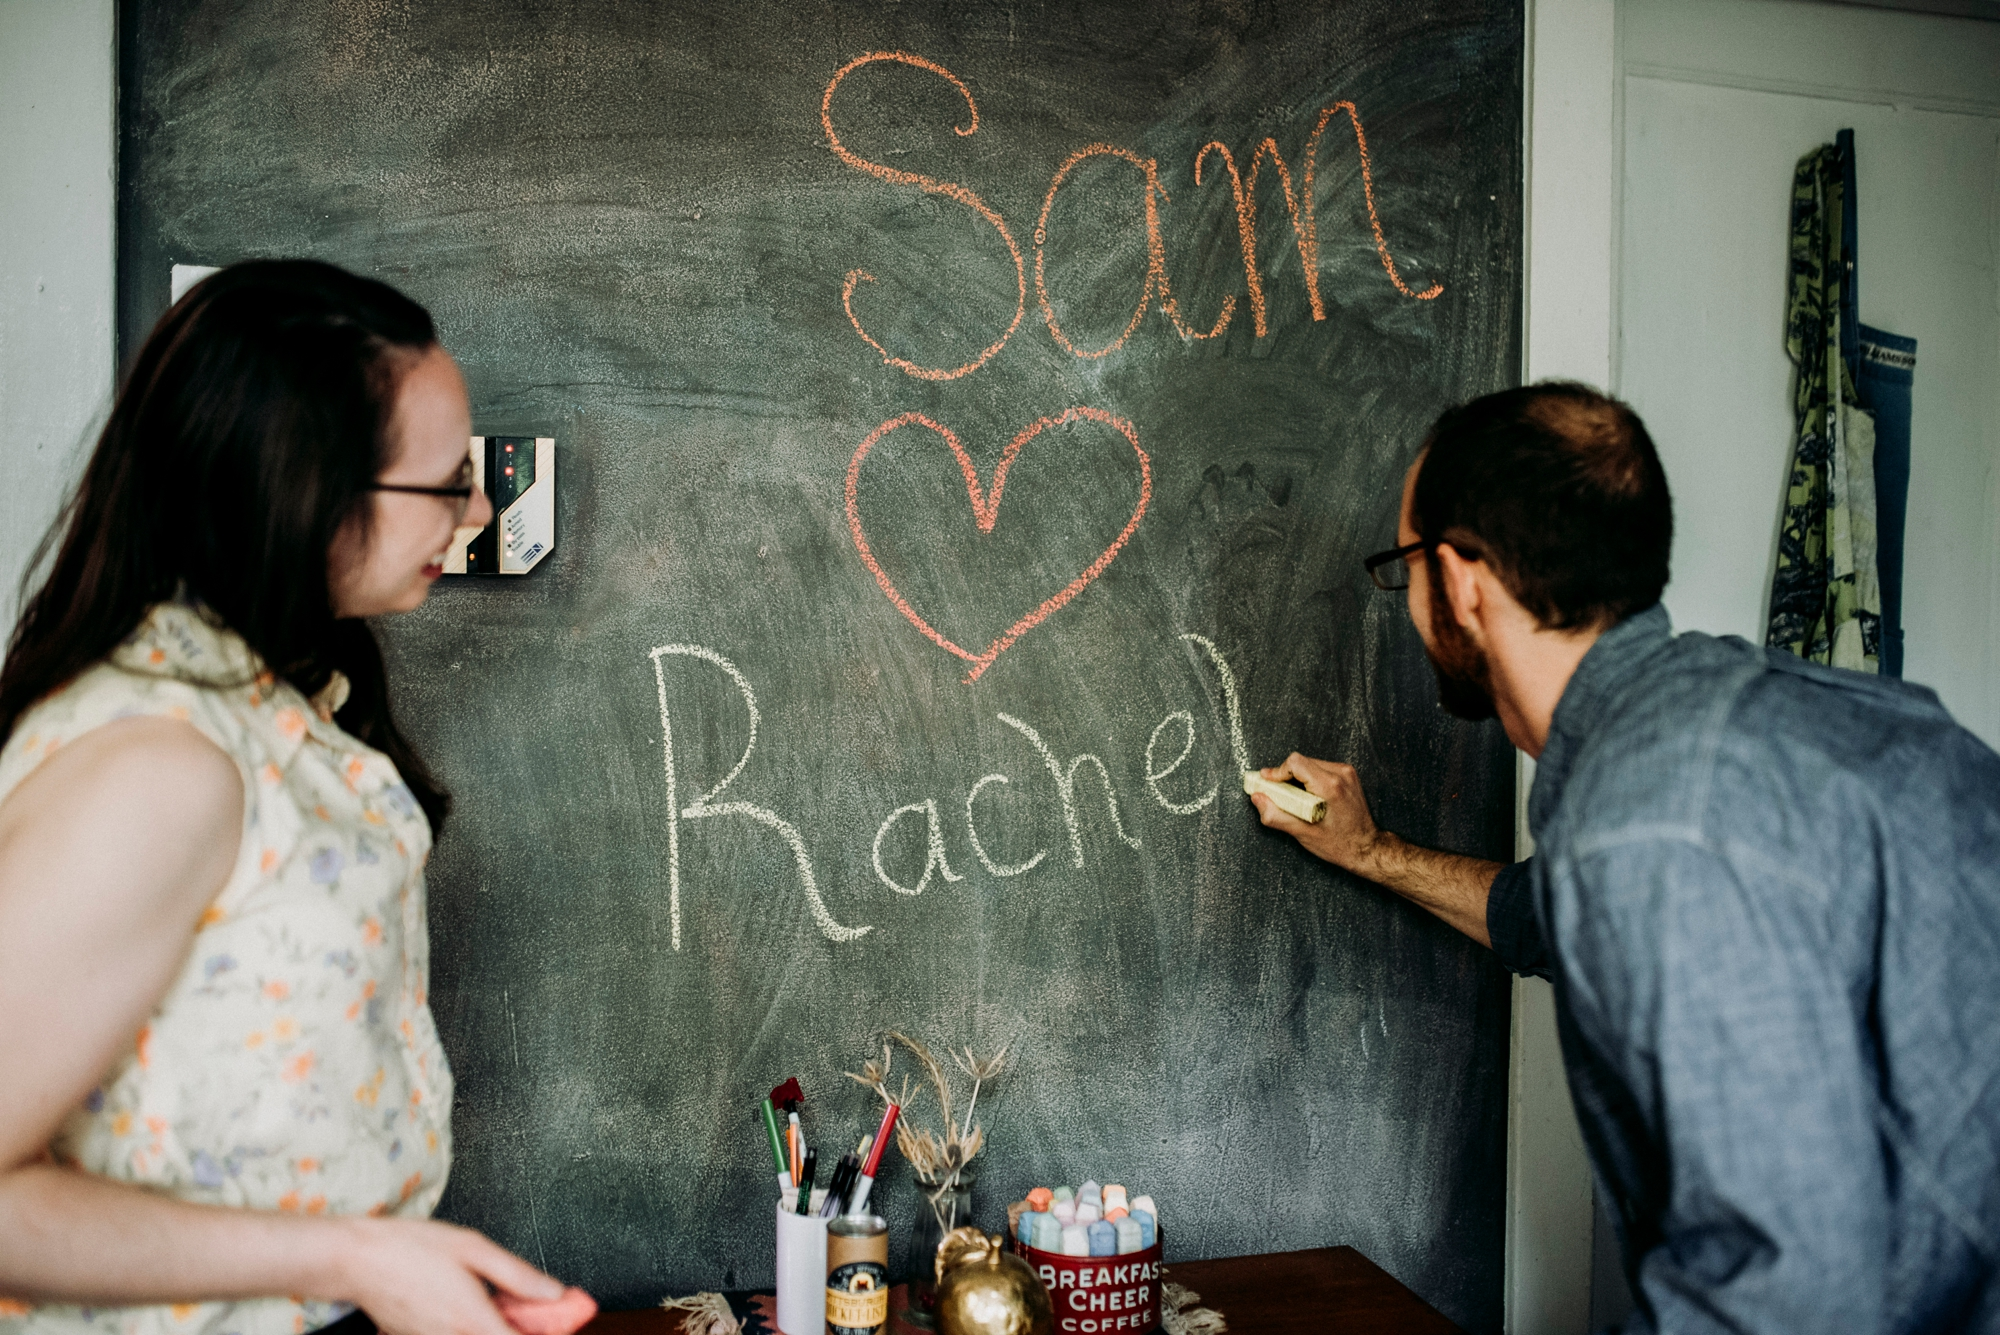 011-R+S_engagement-session-pittsburgh.jpg